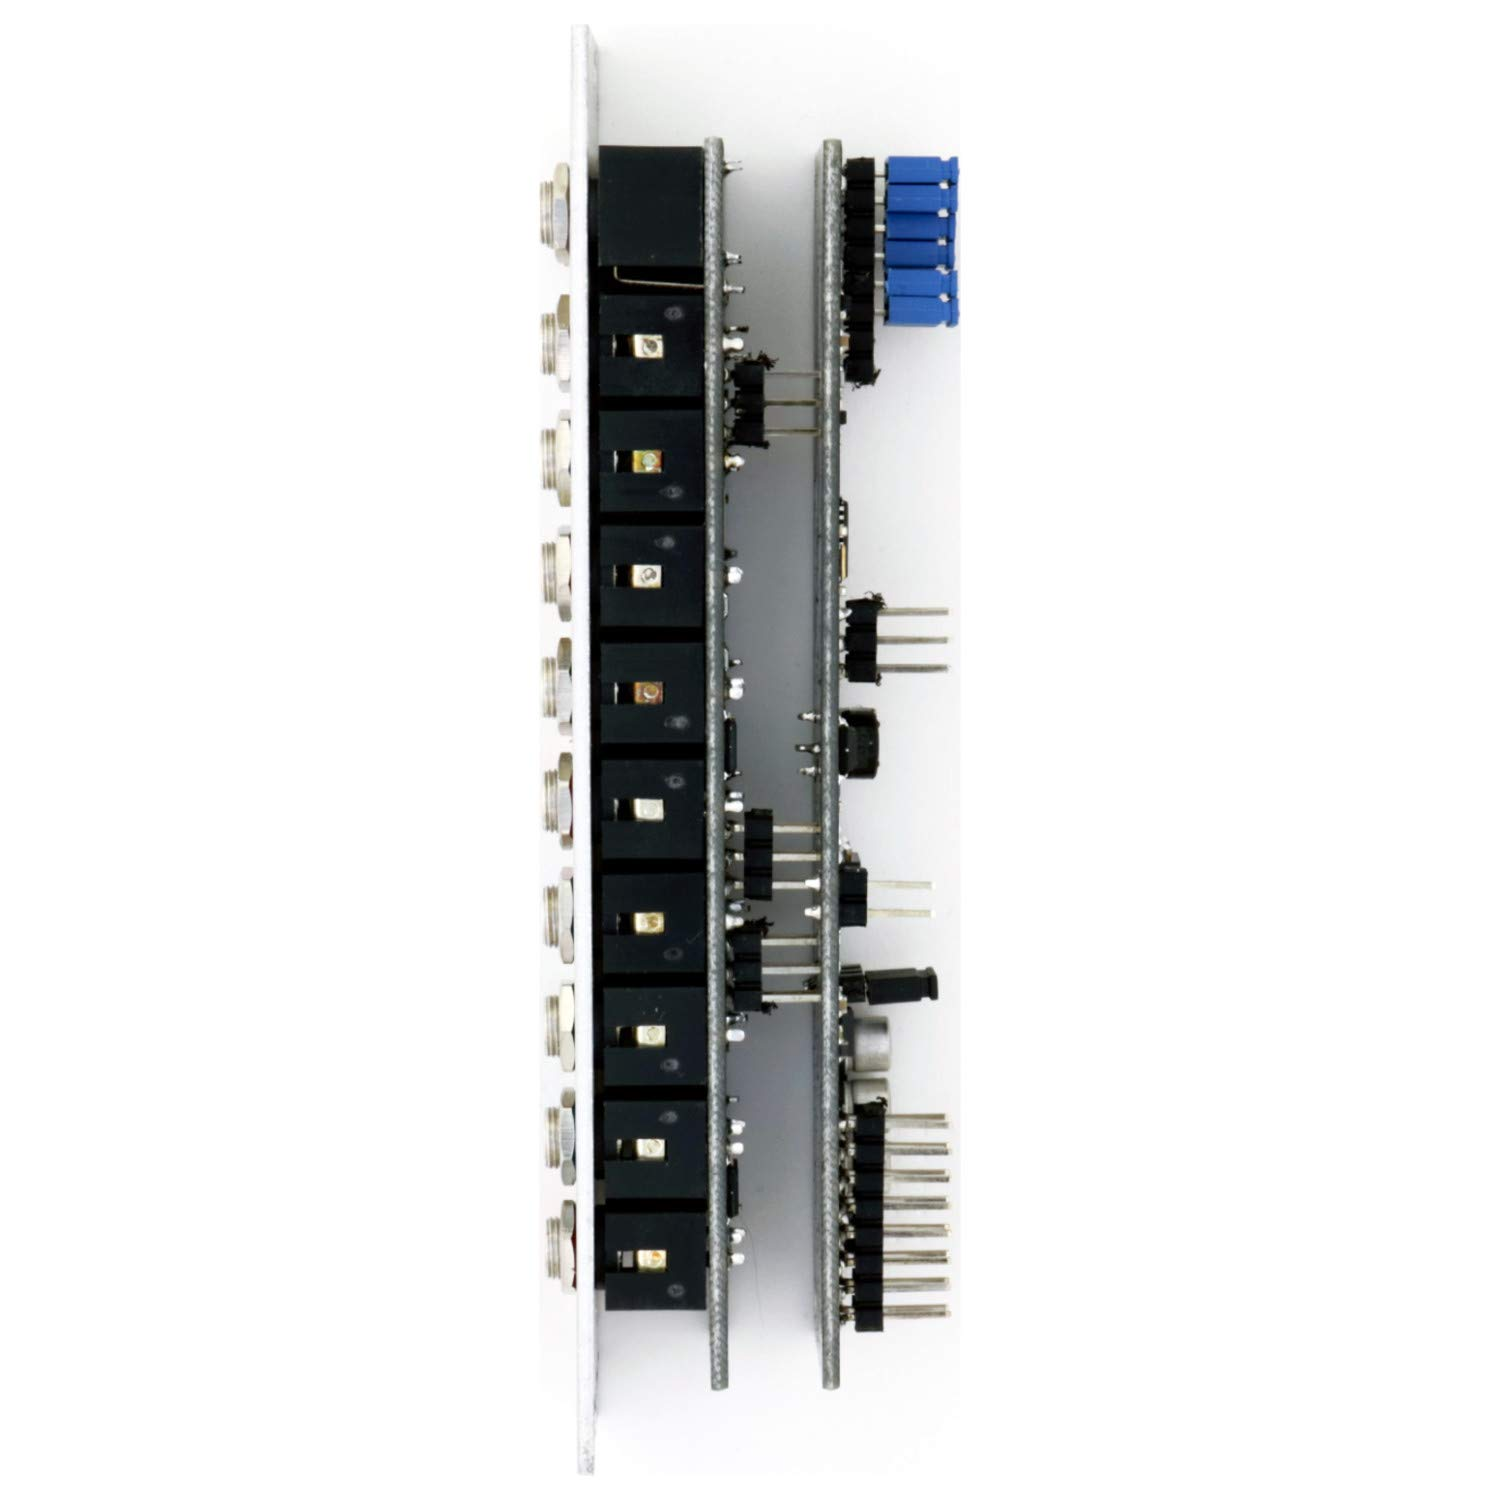 4MS QCD Quad Clock Distributor V2 Eurorack Synth Module w/ 4 Cables by 4MS Company (Image #2)